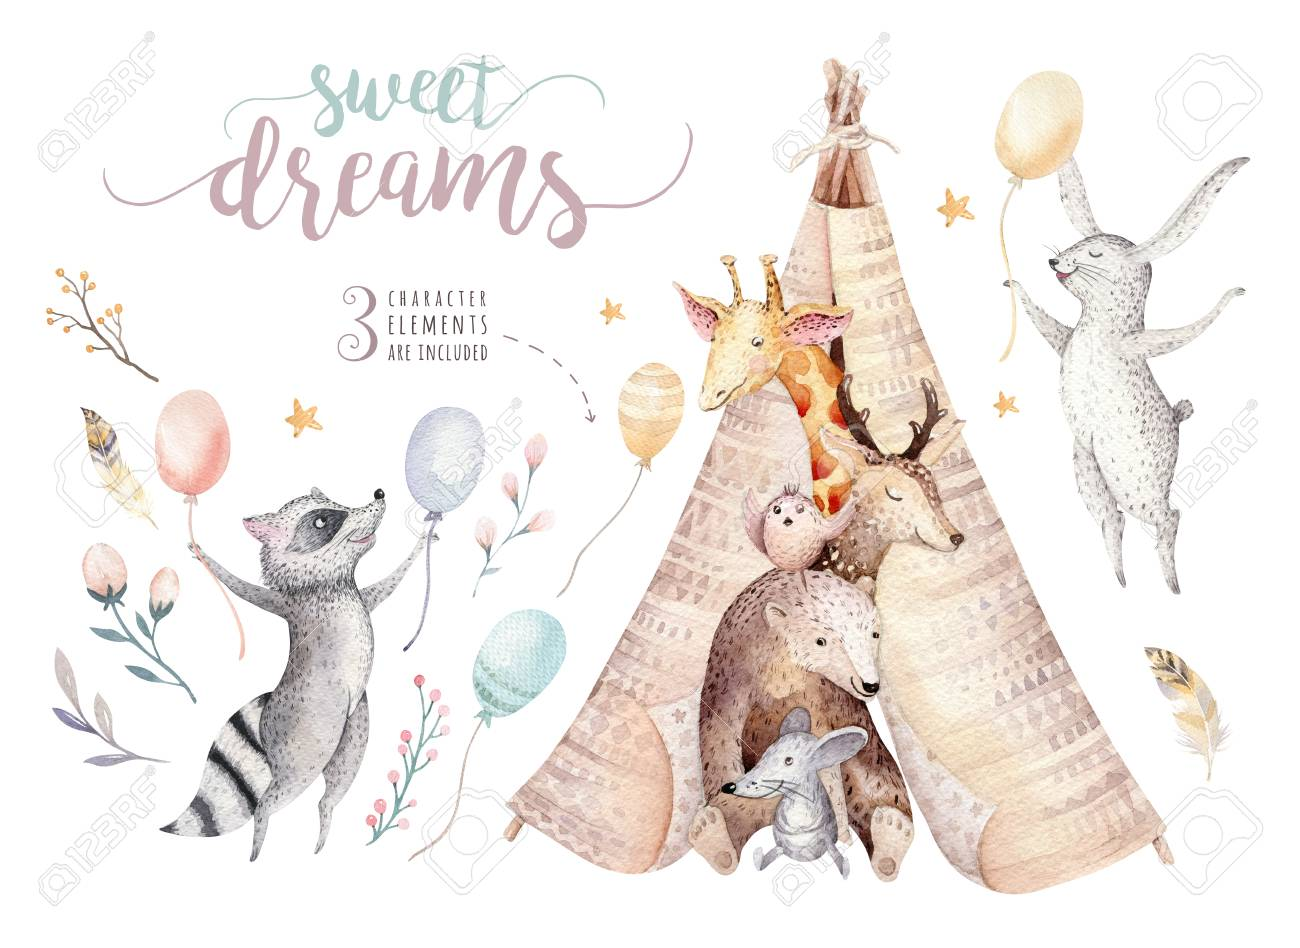 Cute baby giraffe, deer animal nursery mouse and bear, raccoon and bunny isolated illustration for children. Watercolor boho forest cartoon Birthday patry teepee invitation - 97608351